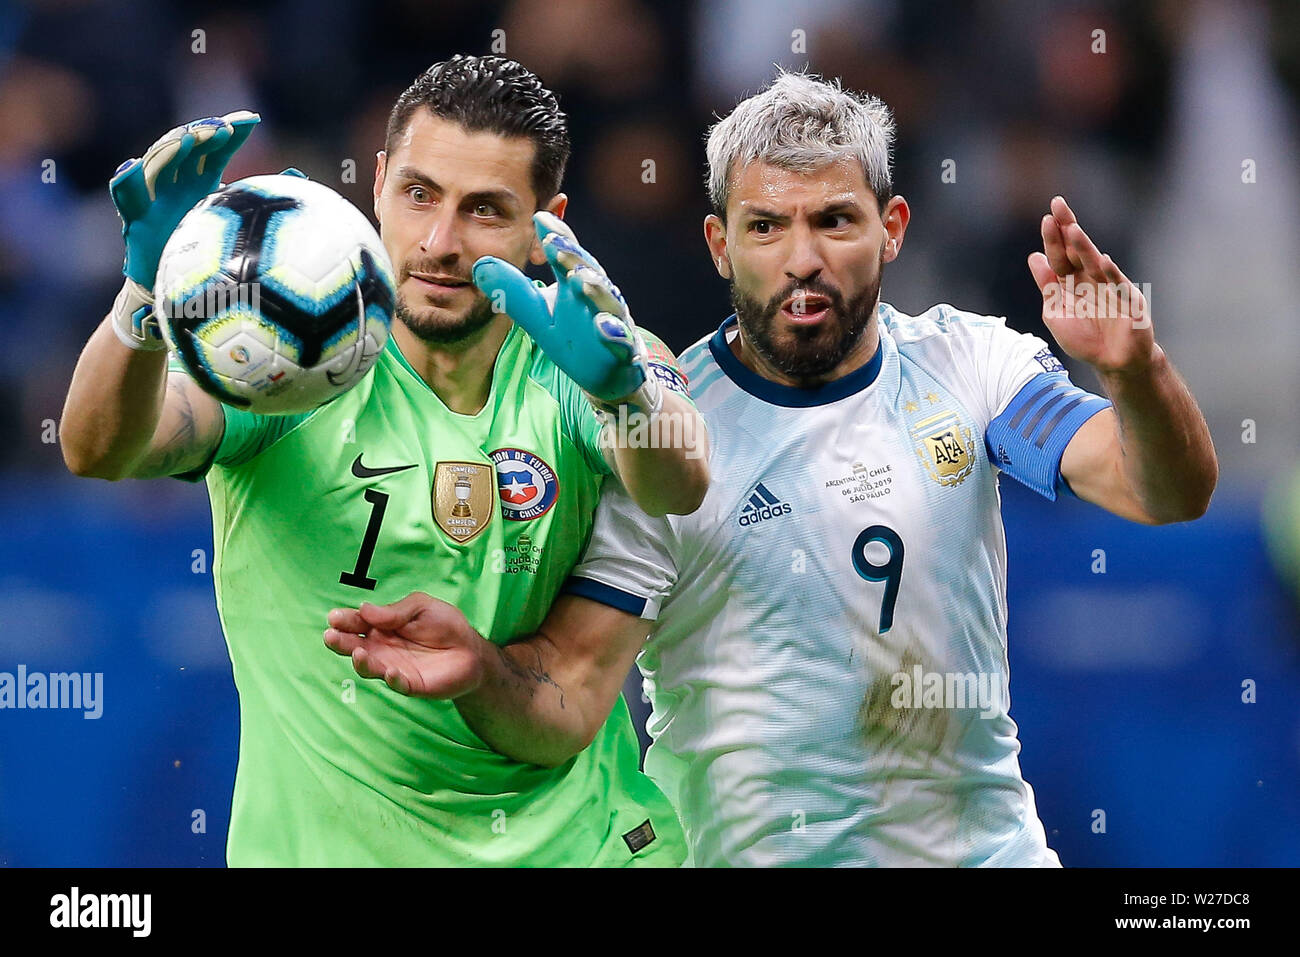 SÃO PAULO, SP - 06.07.2019: ARGENTINA VS. CHILE - Gabriel Arias of Chile plays the ball with Sergio Kun Aguero of Argentina during a match between Argentina and Chile, valid for the third place match of the Copa América 2019, held this Saturday (06) at the Corinthians Arena in São Paulo, SP. (Photo: Marcelo Machado de Melo/Fotoarena) - Stock Image